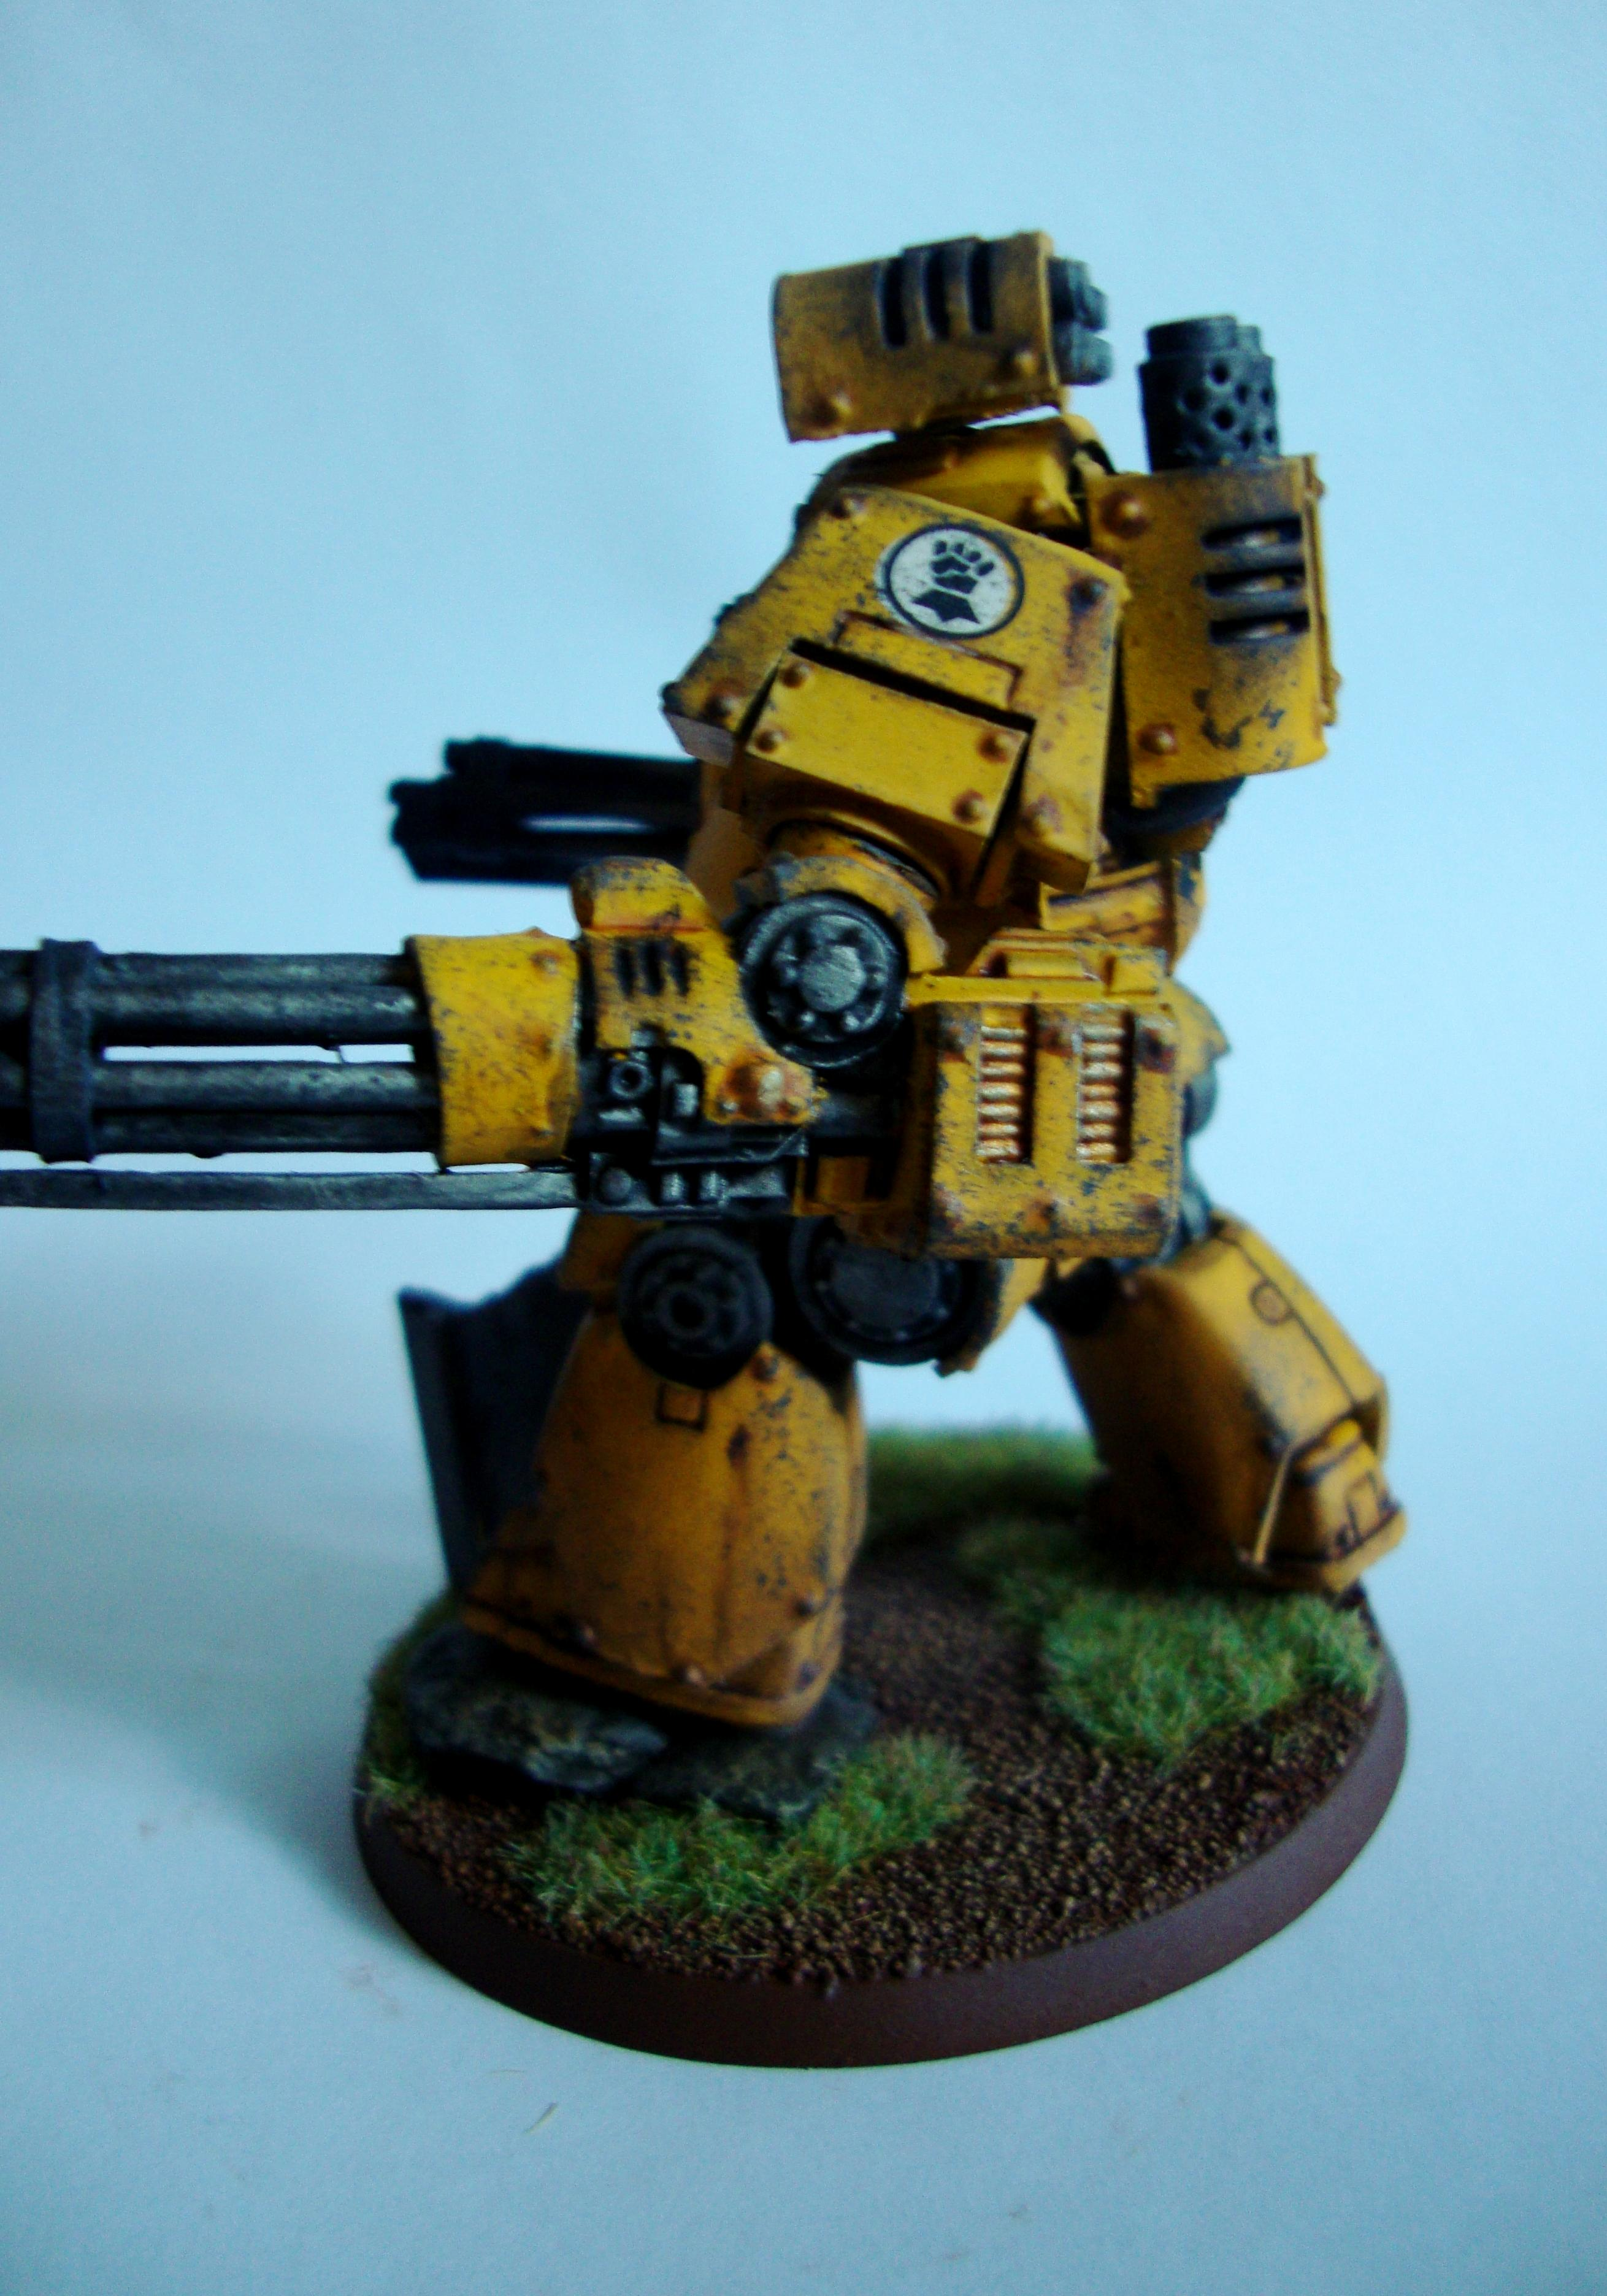 Airbrush, Contemptor, Dreadnough, Heresy, Imperial Fists, Mortis, Space Marines